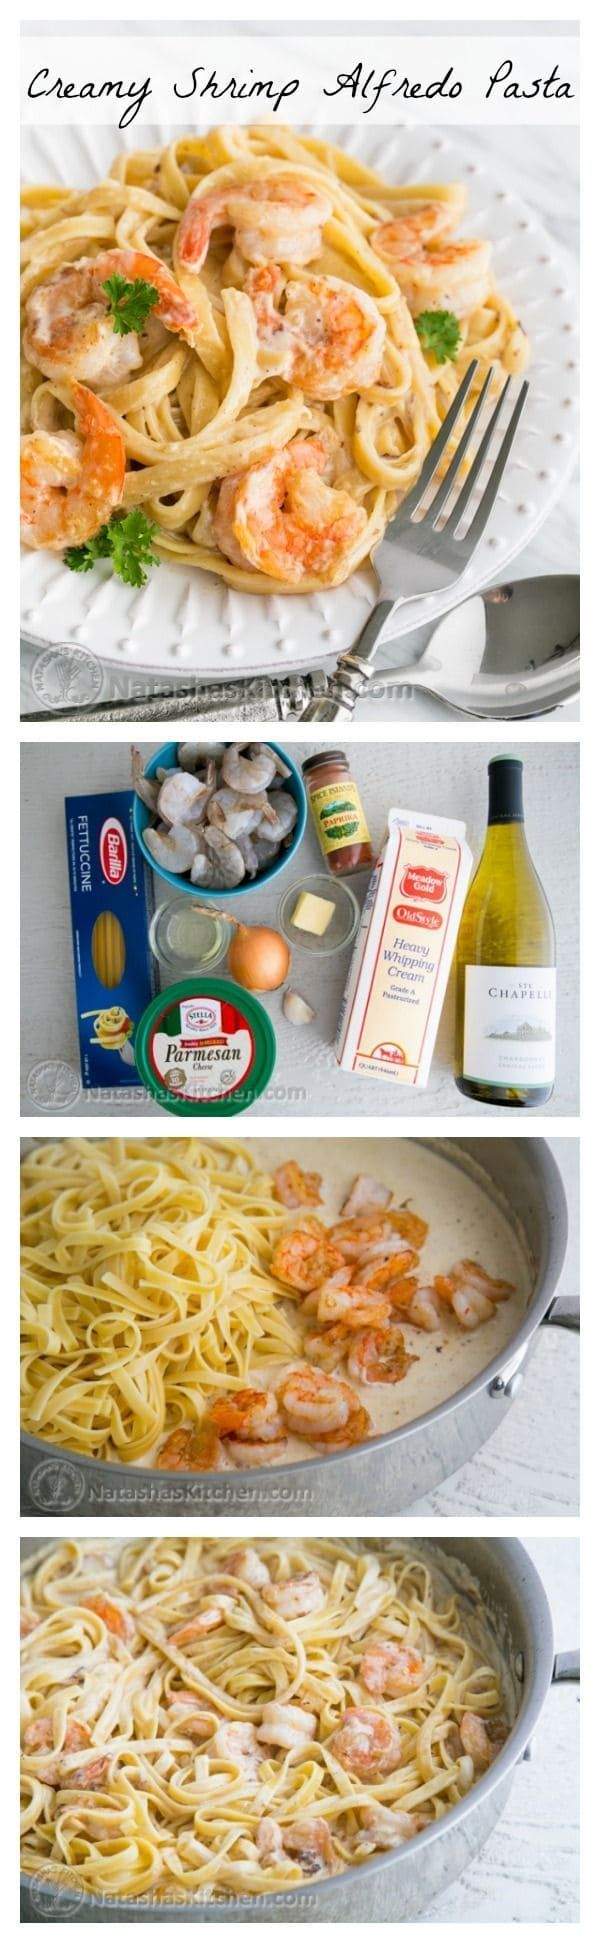 This recipe reminds me of my favorite dish at Olive Garden; seafood alfredo. The creamy pasta studded with large, tender shrimp is the ultimate comfort food! |natashaskitchen